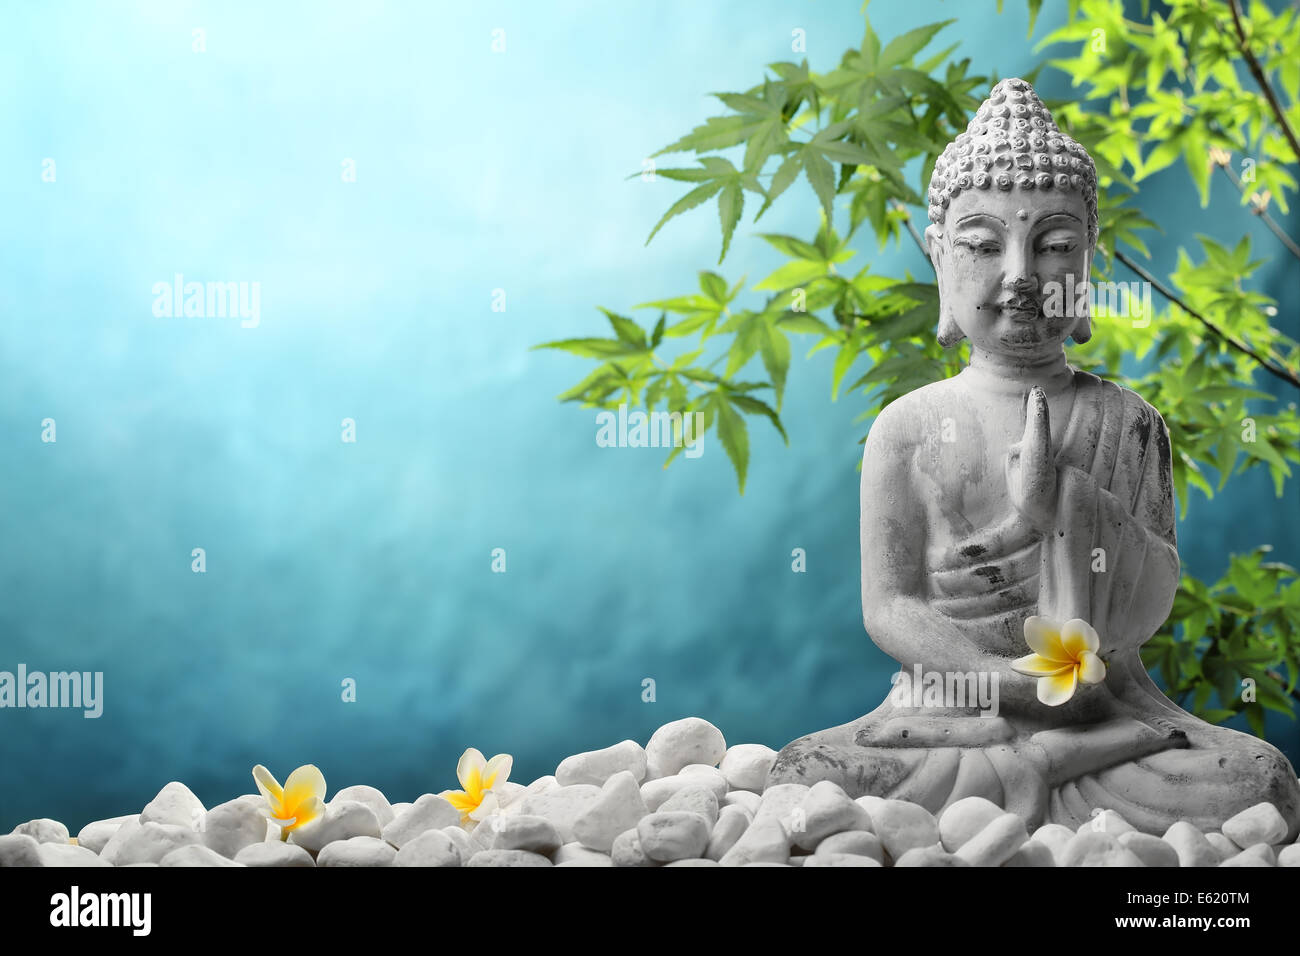 Buddha in meditation with zen stones and flower. - Stock Image